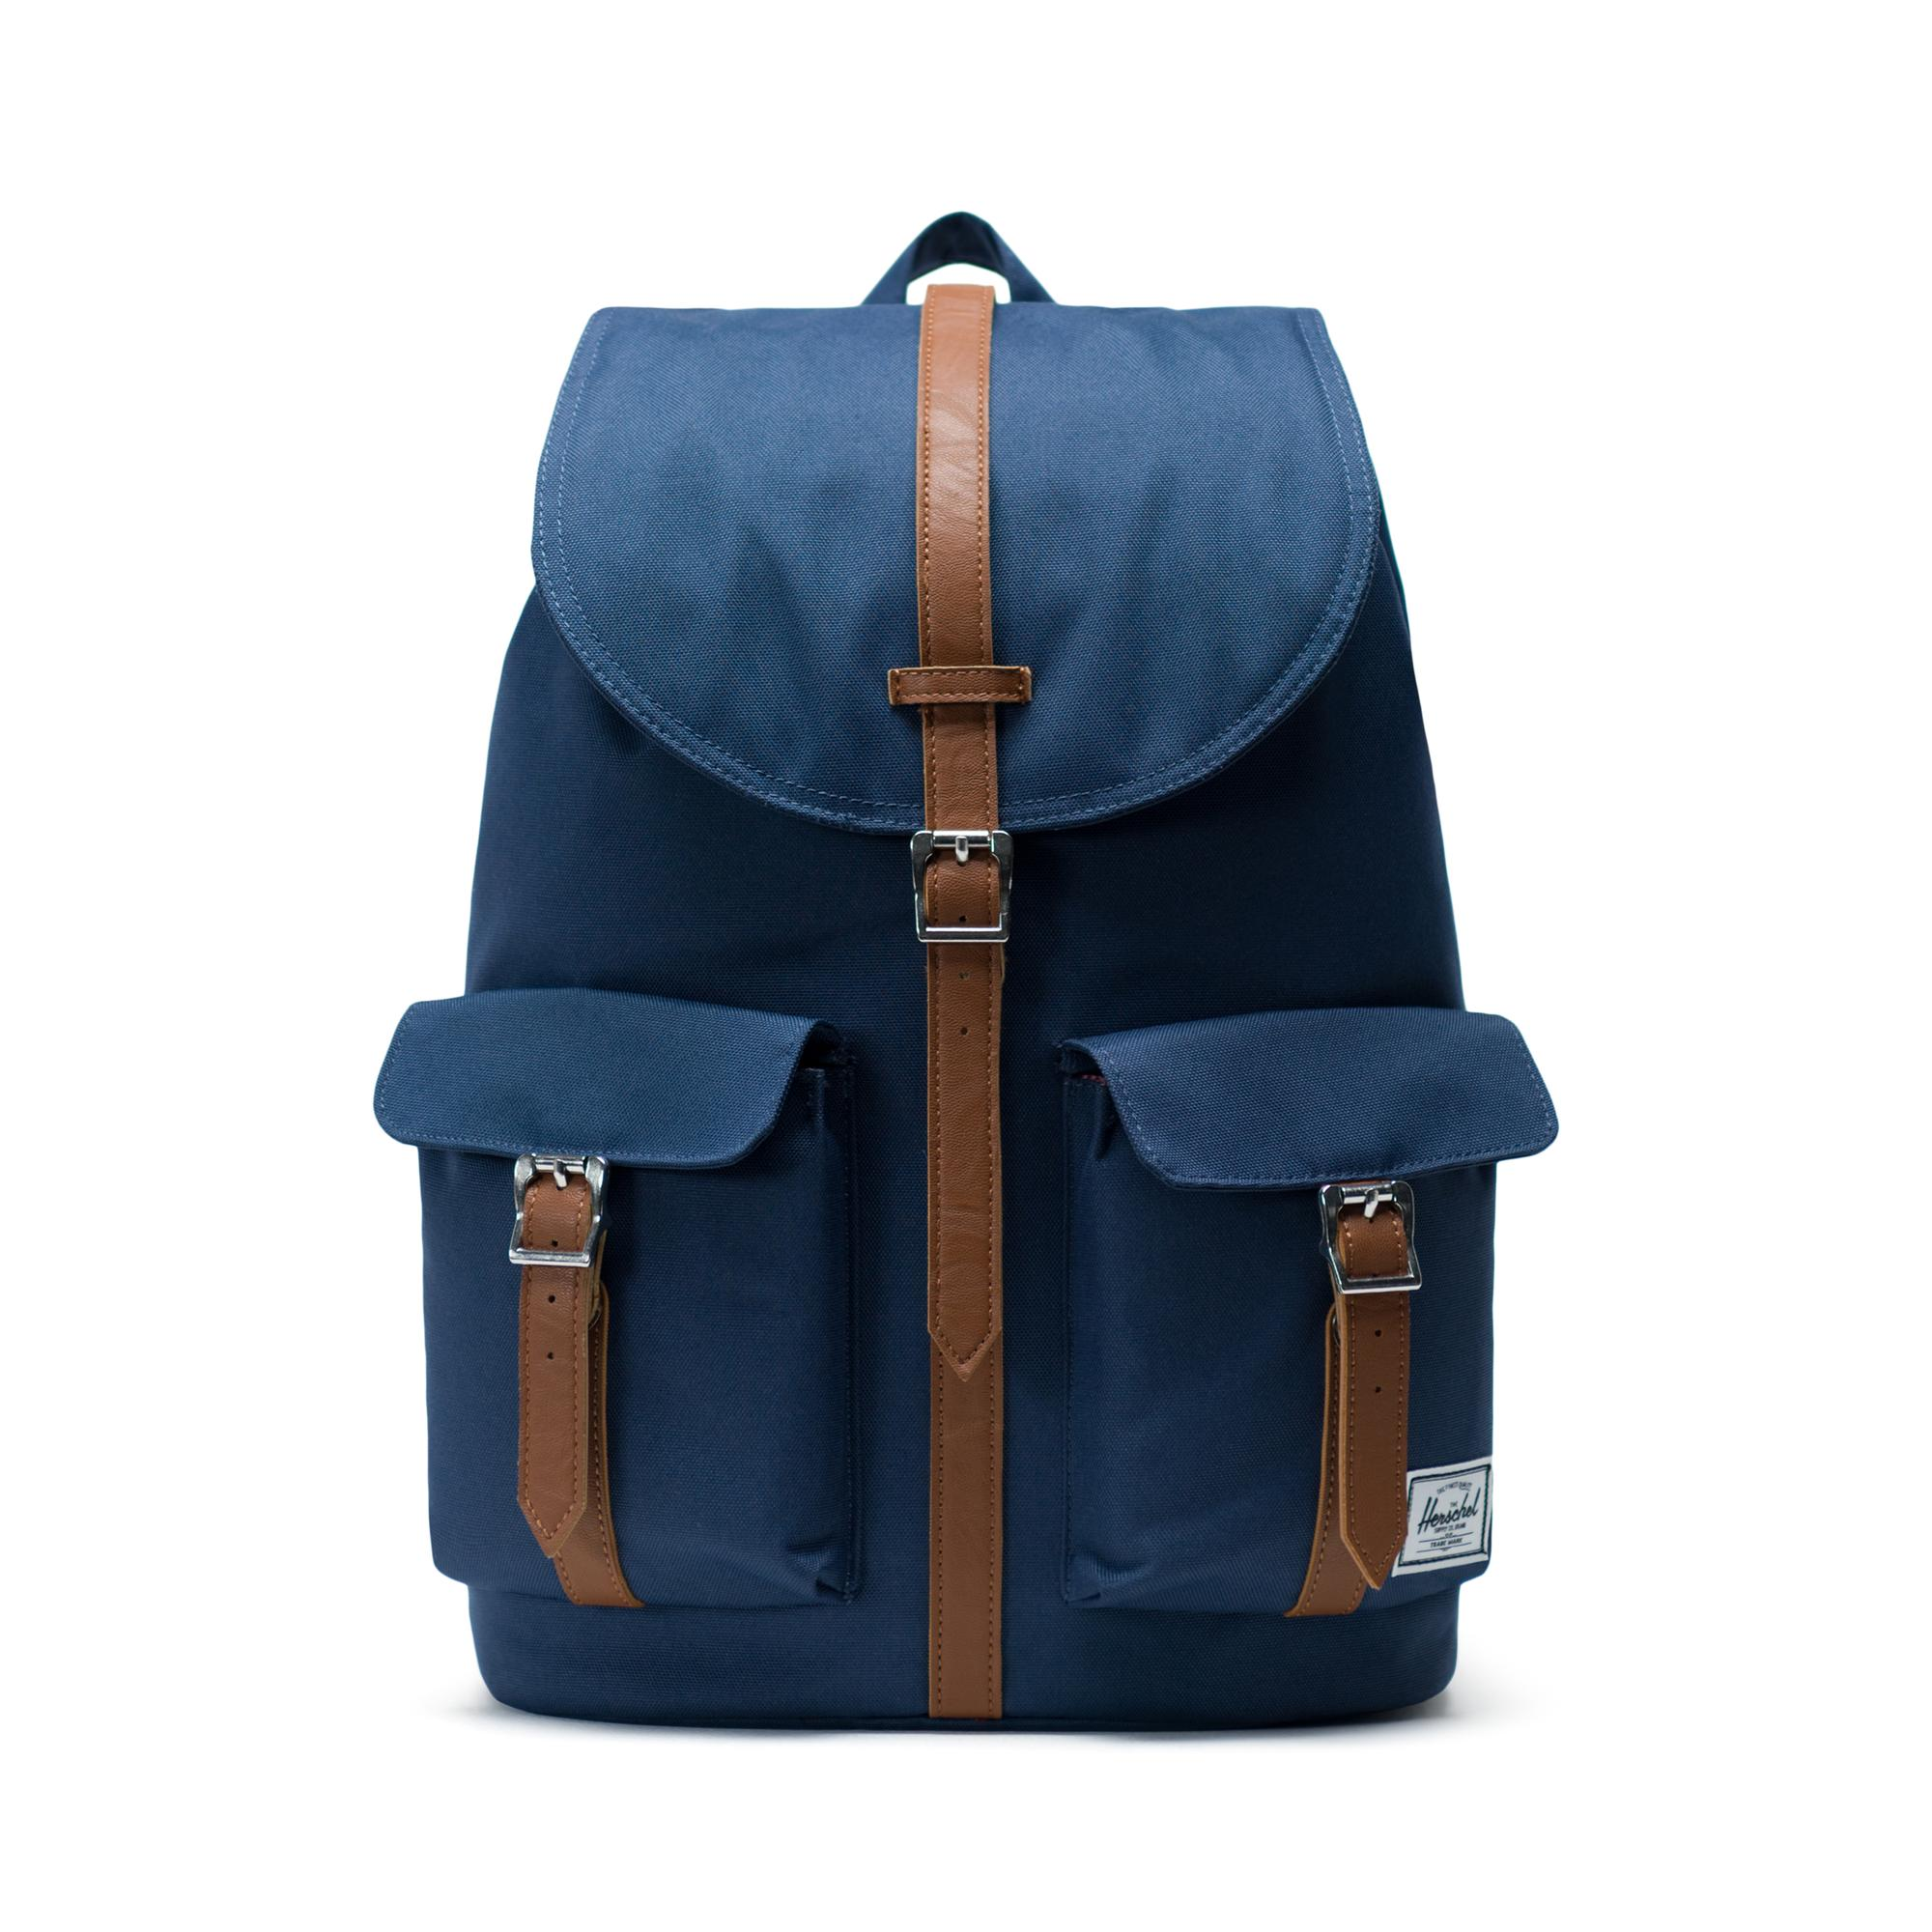 344eaf9b682 Dawson Backpack